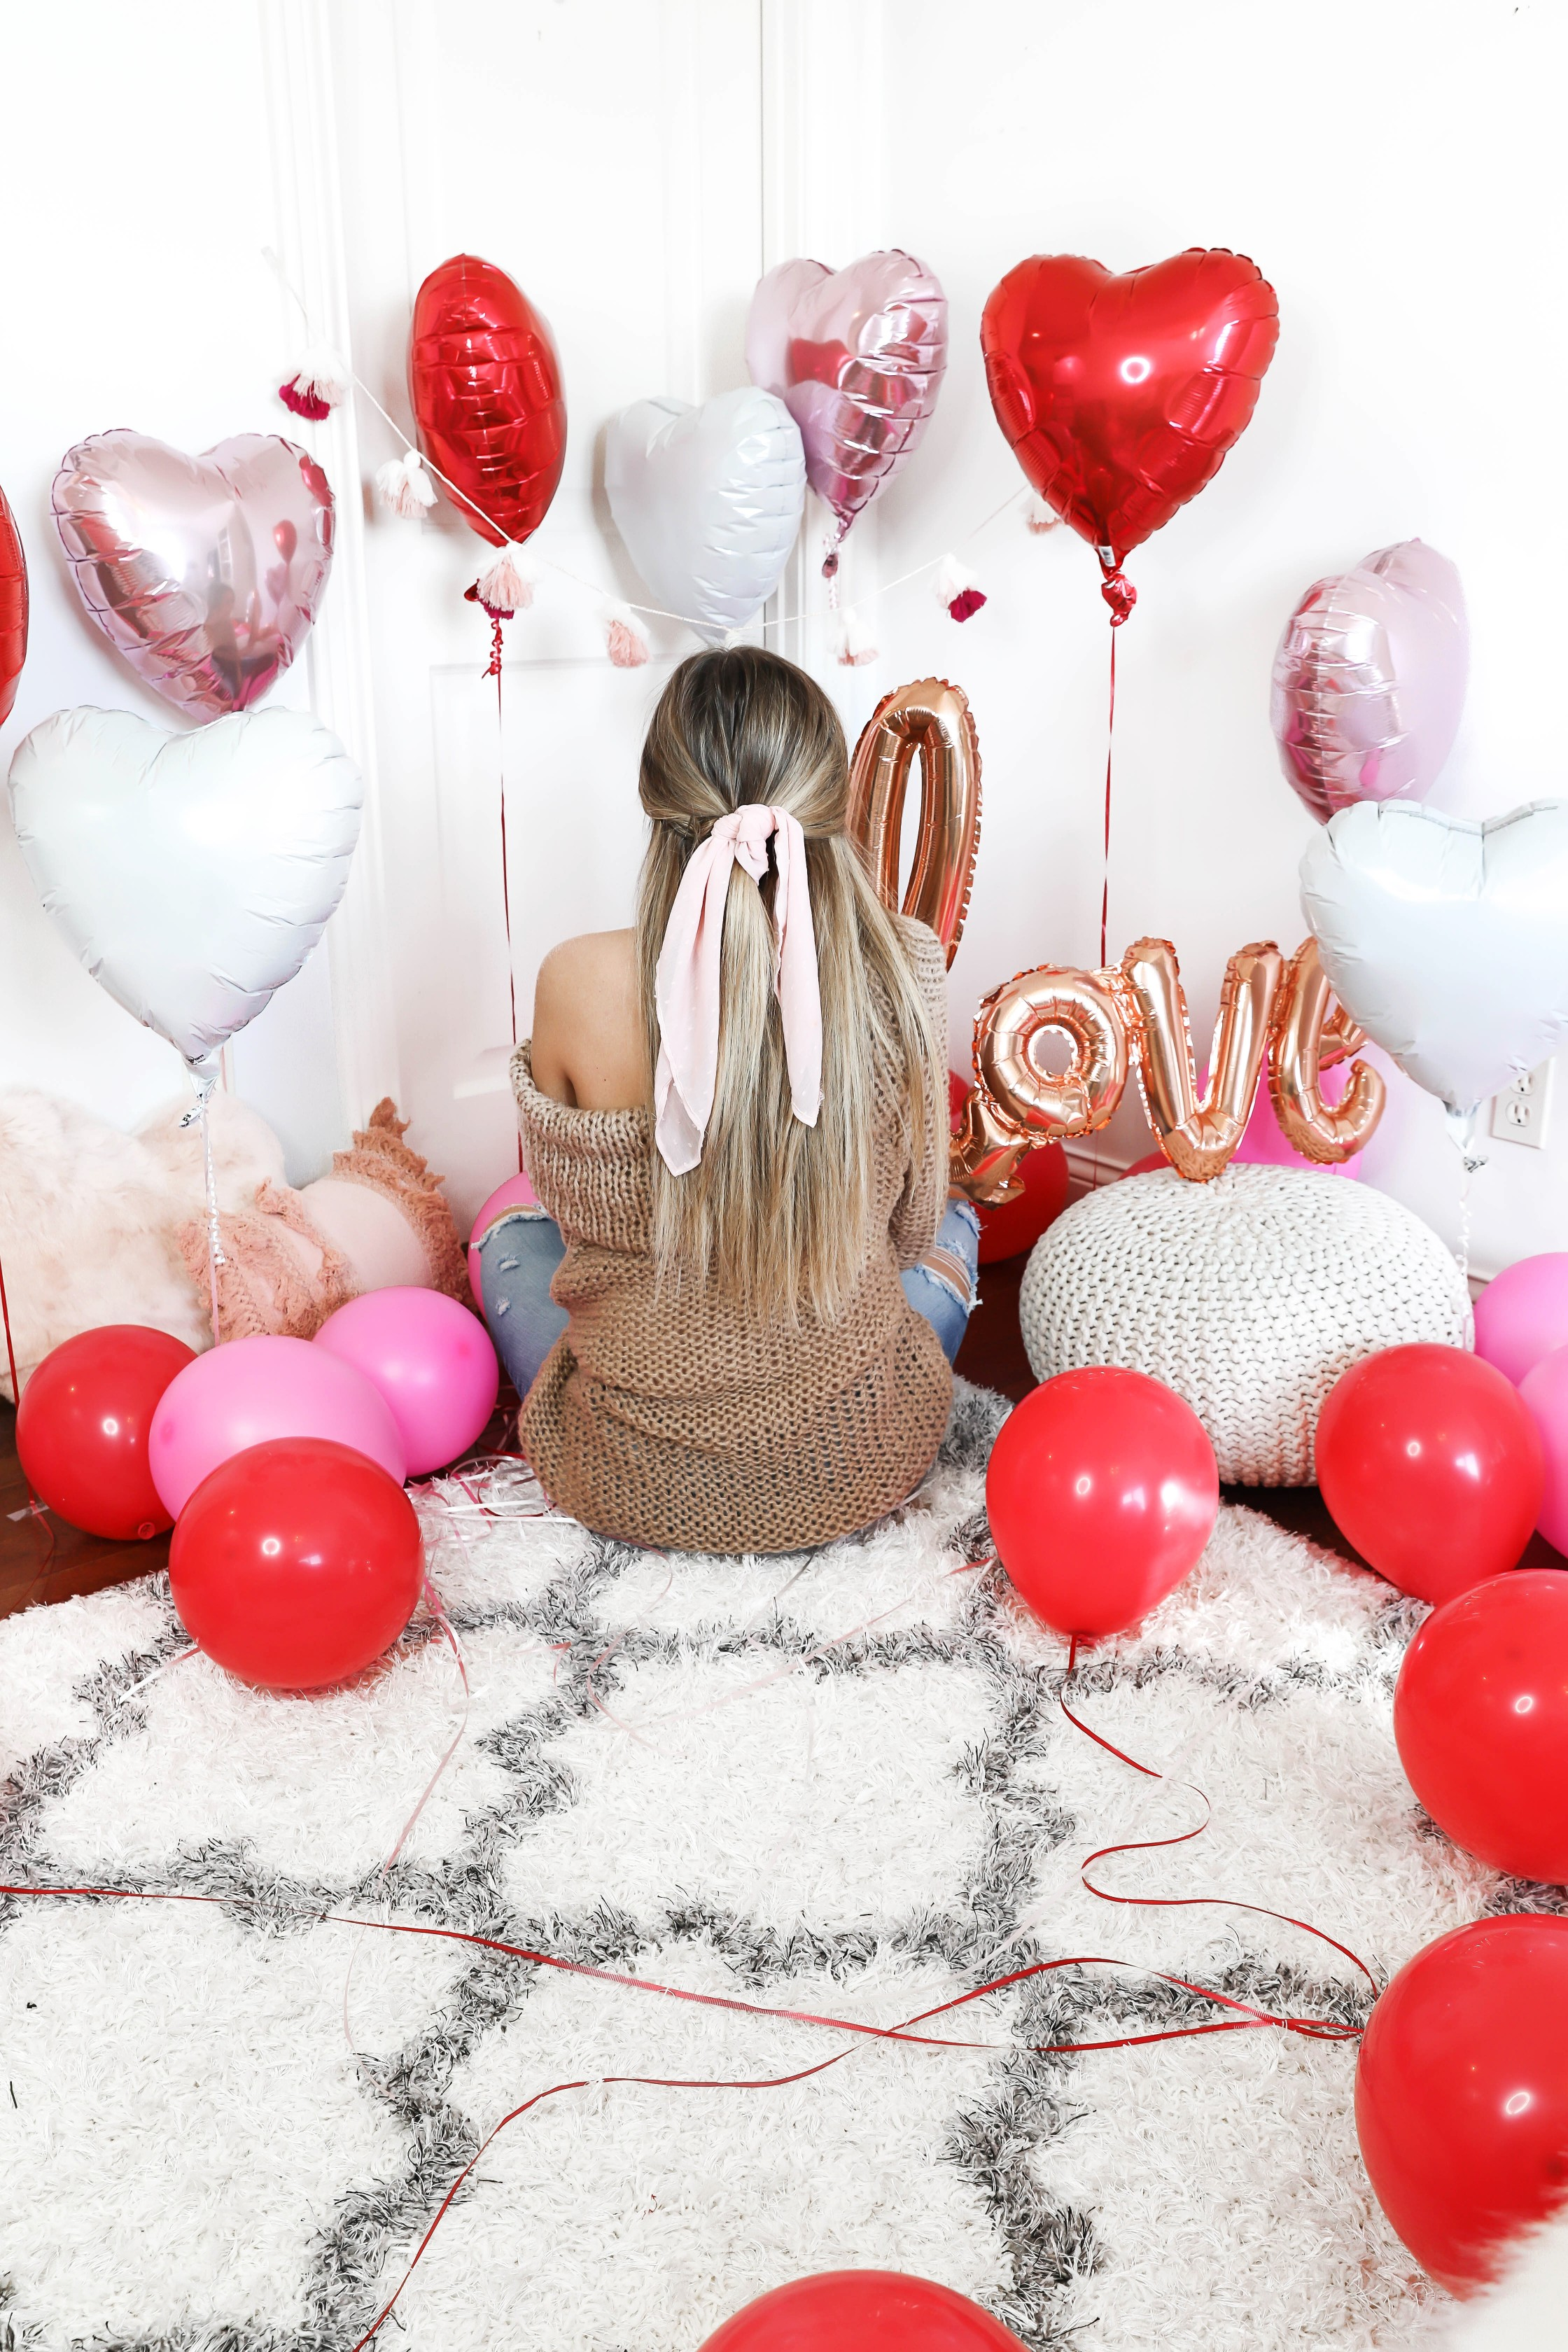 Valentine's Day shoot with the cutest heart shaped balloons and pink and red decor! My cute little pomeranian puppy dog made an appearance in the pics! I am wearing the cutest, tan, off the shoulder sweater from amazon and the cutest ripped denim from Red Dress Boutique! Details on style and fashion blog daily dose of charm by lauren lindmark